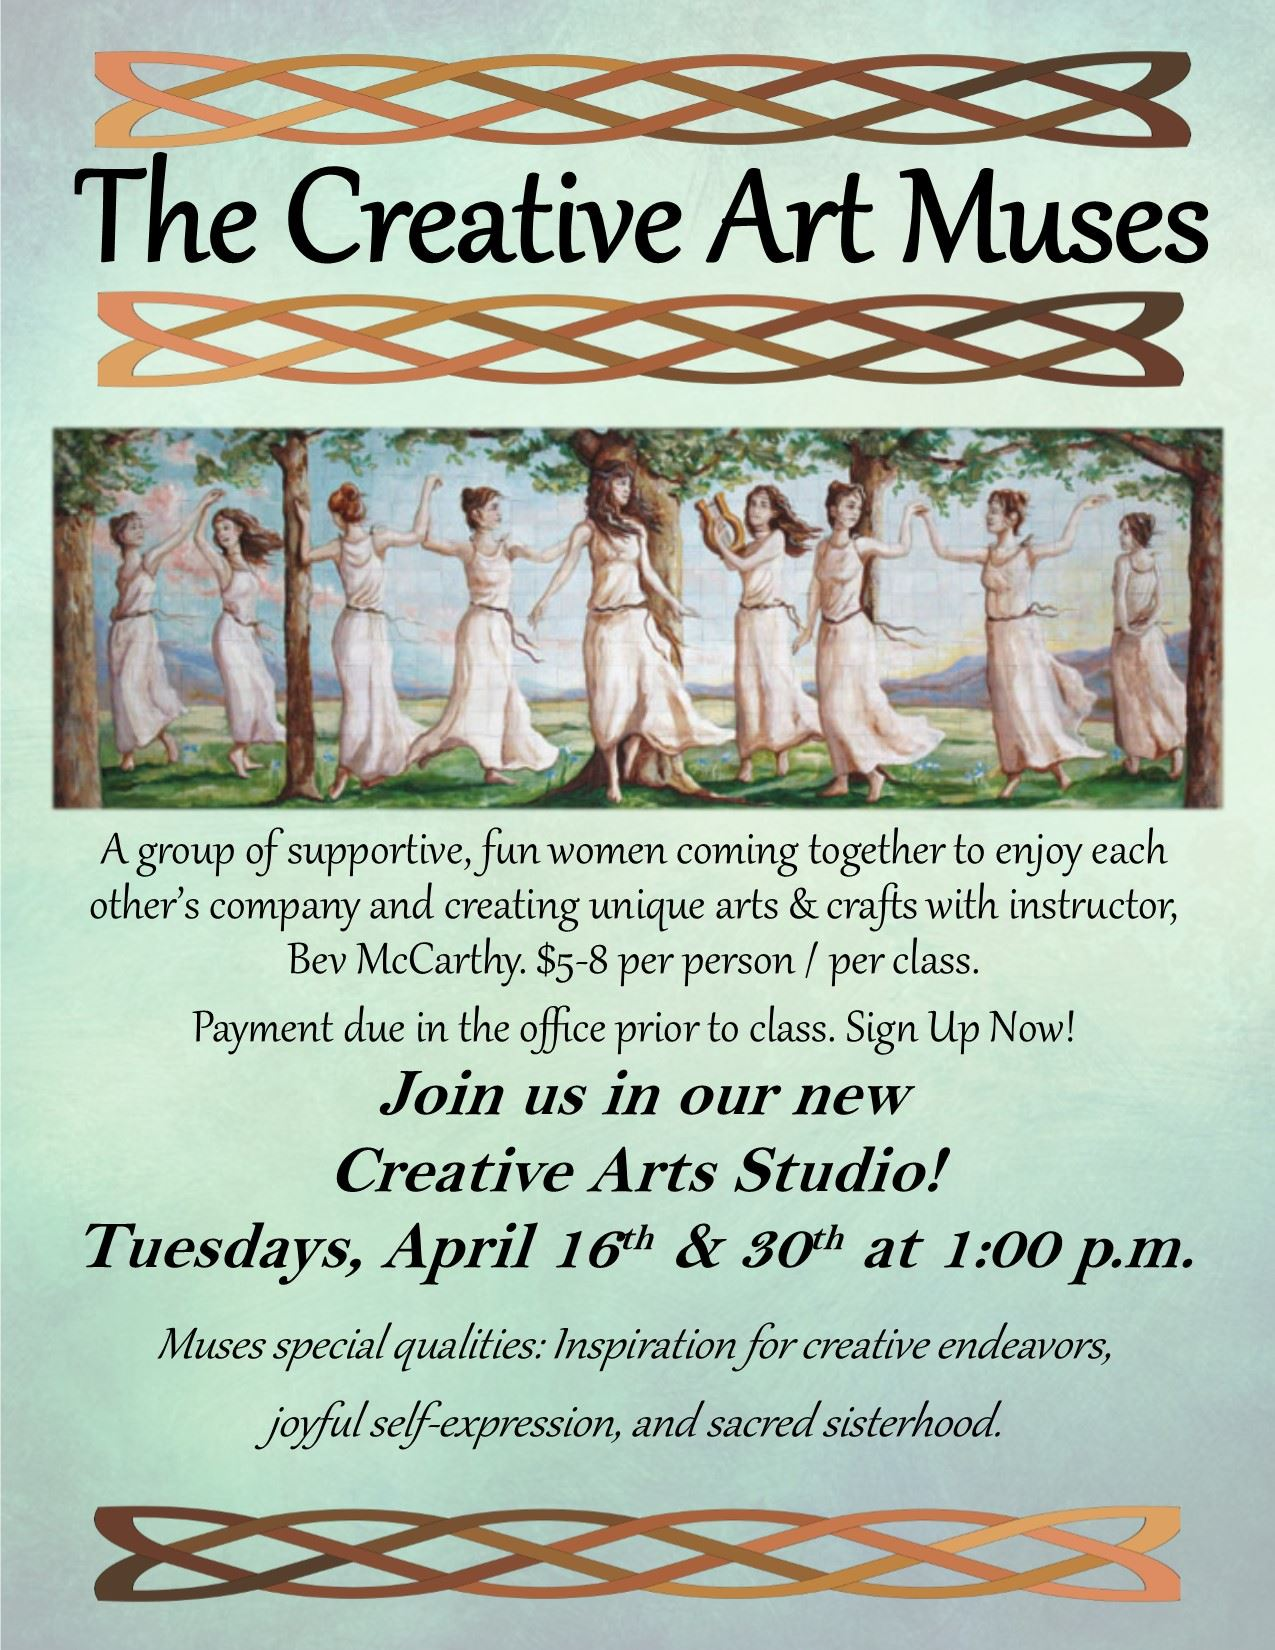 The Creative Art Muses-April